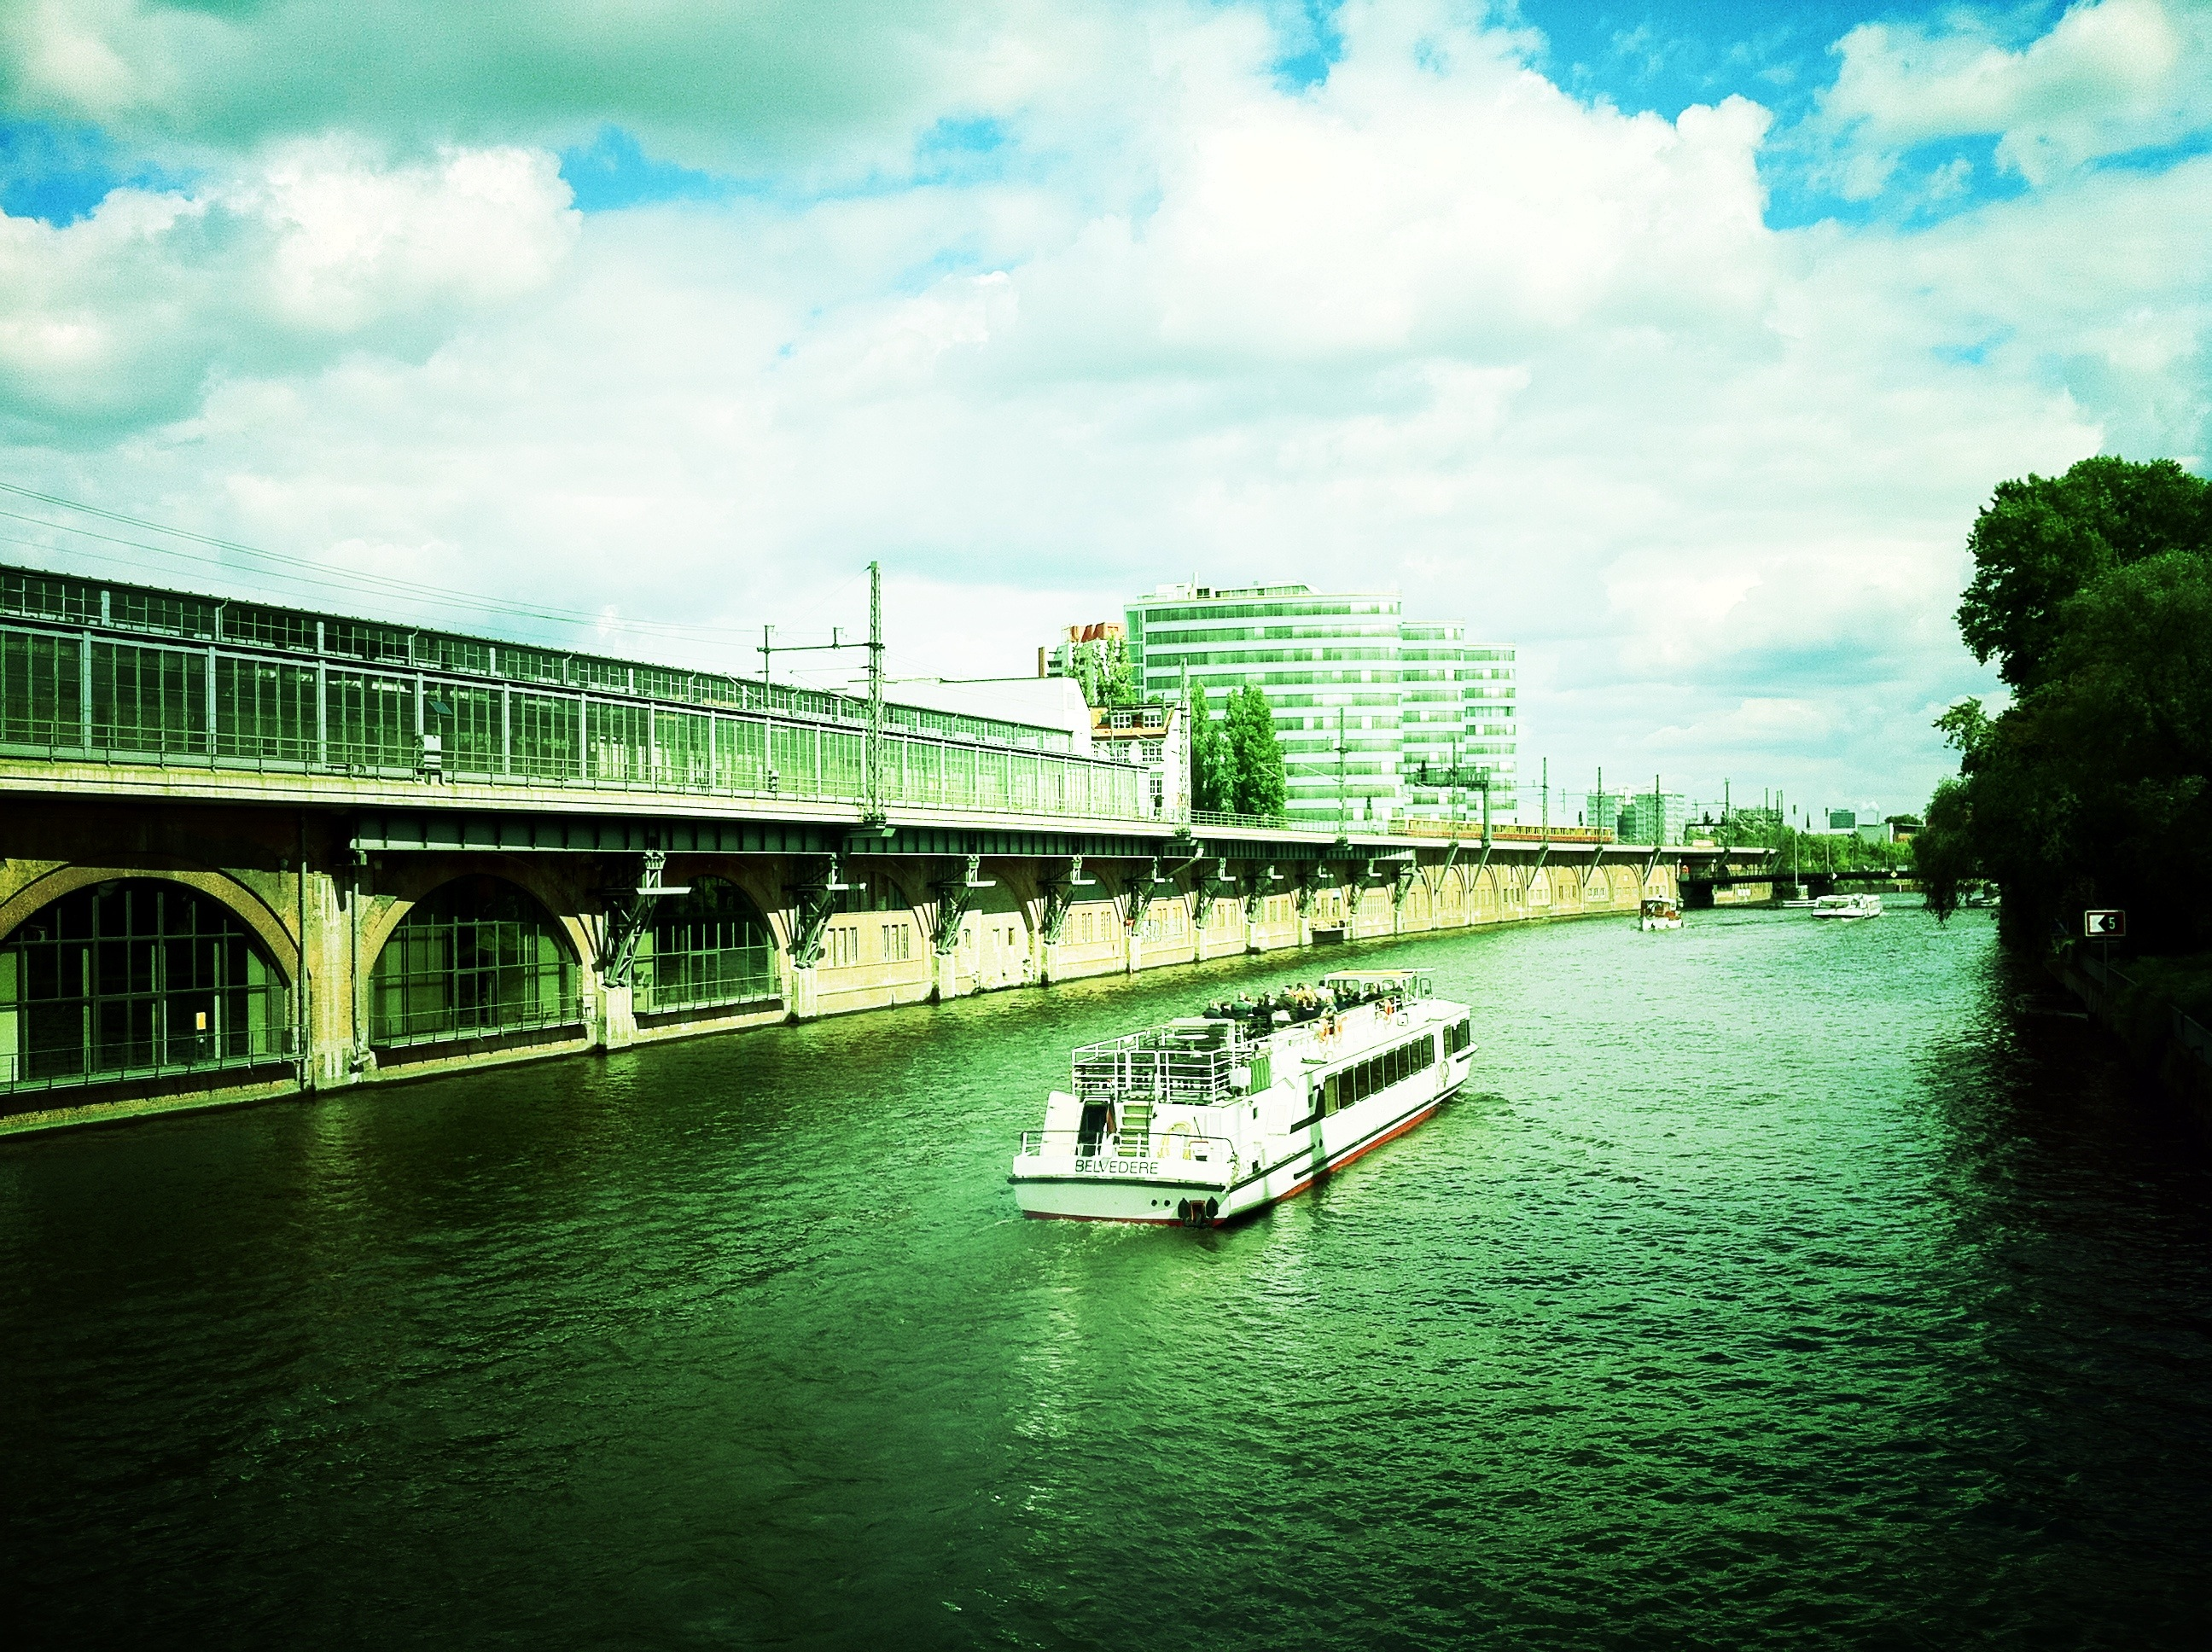 A photograph of a boat going down a river in Berlin.